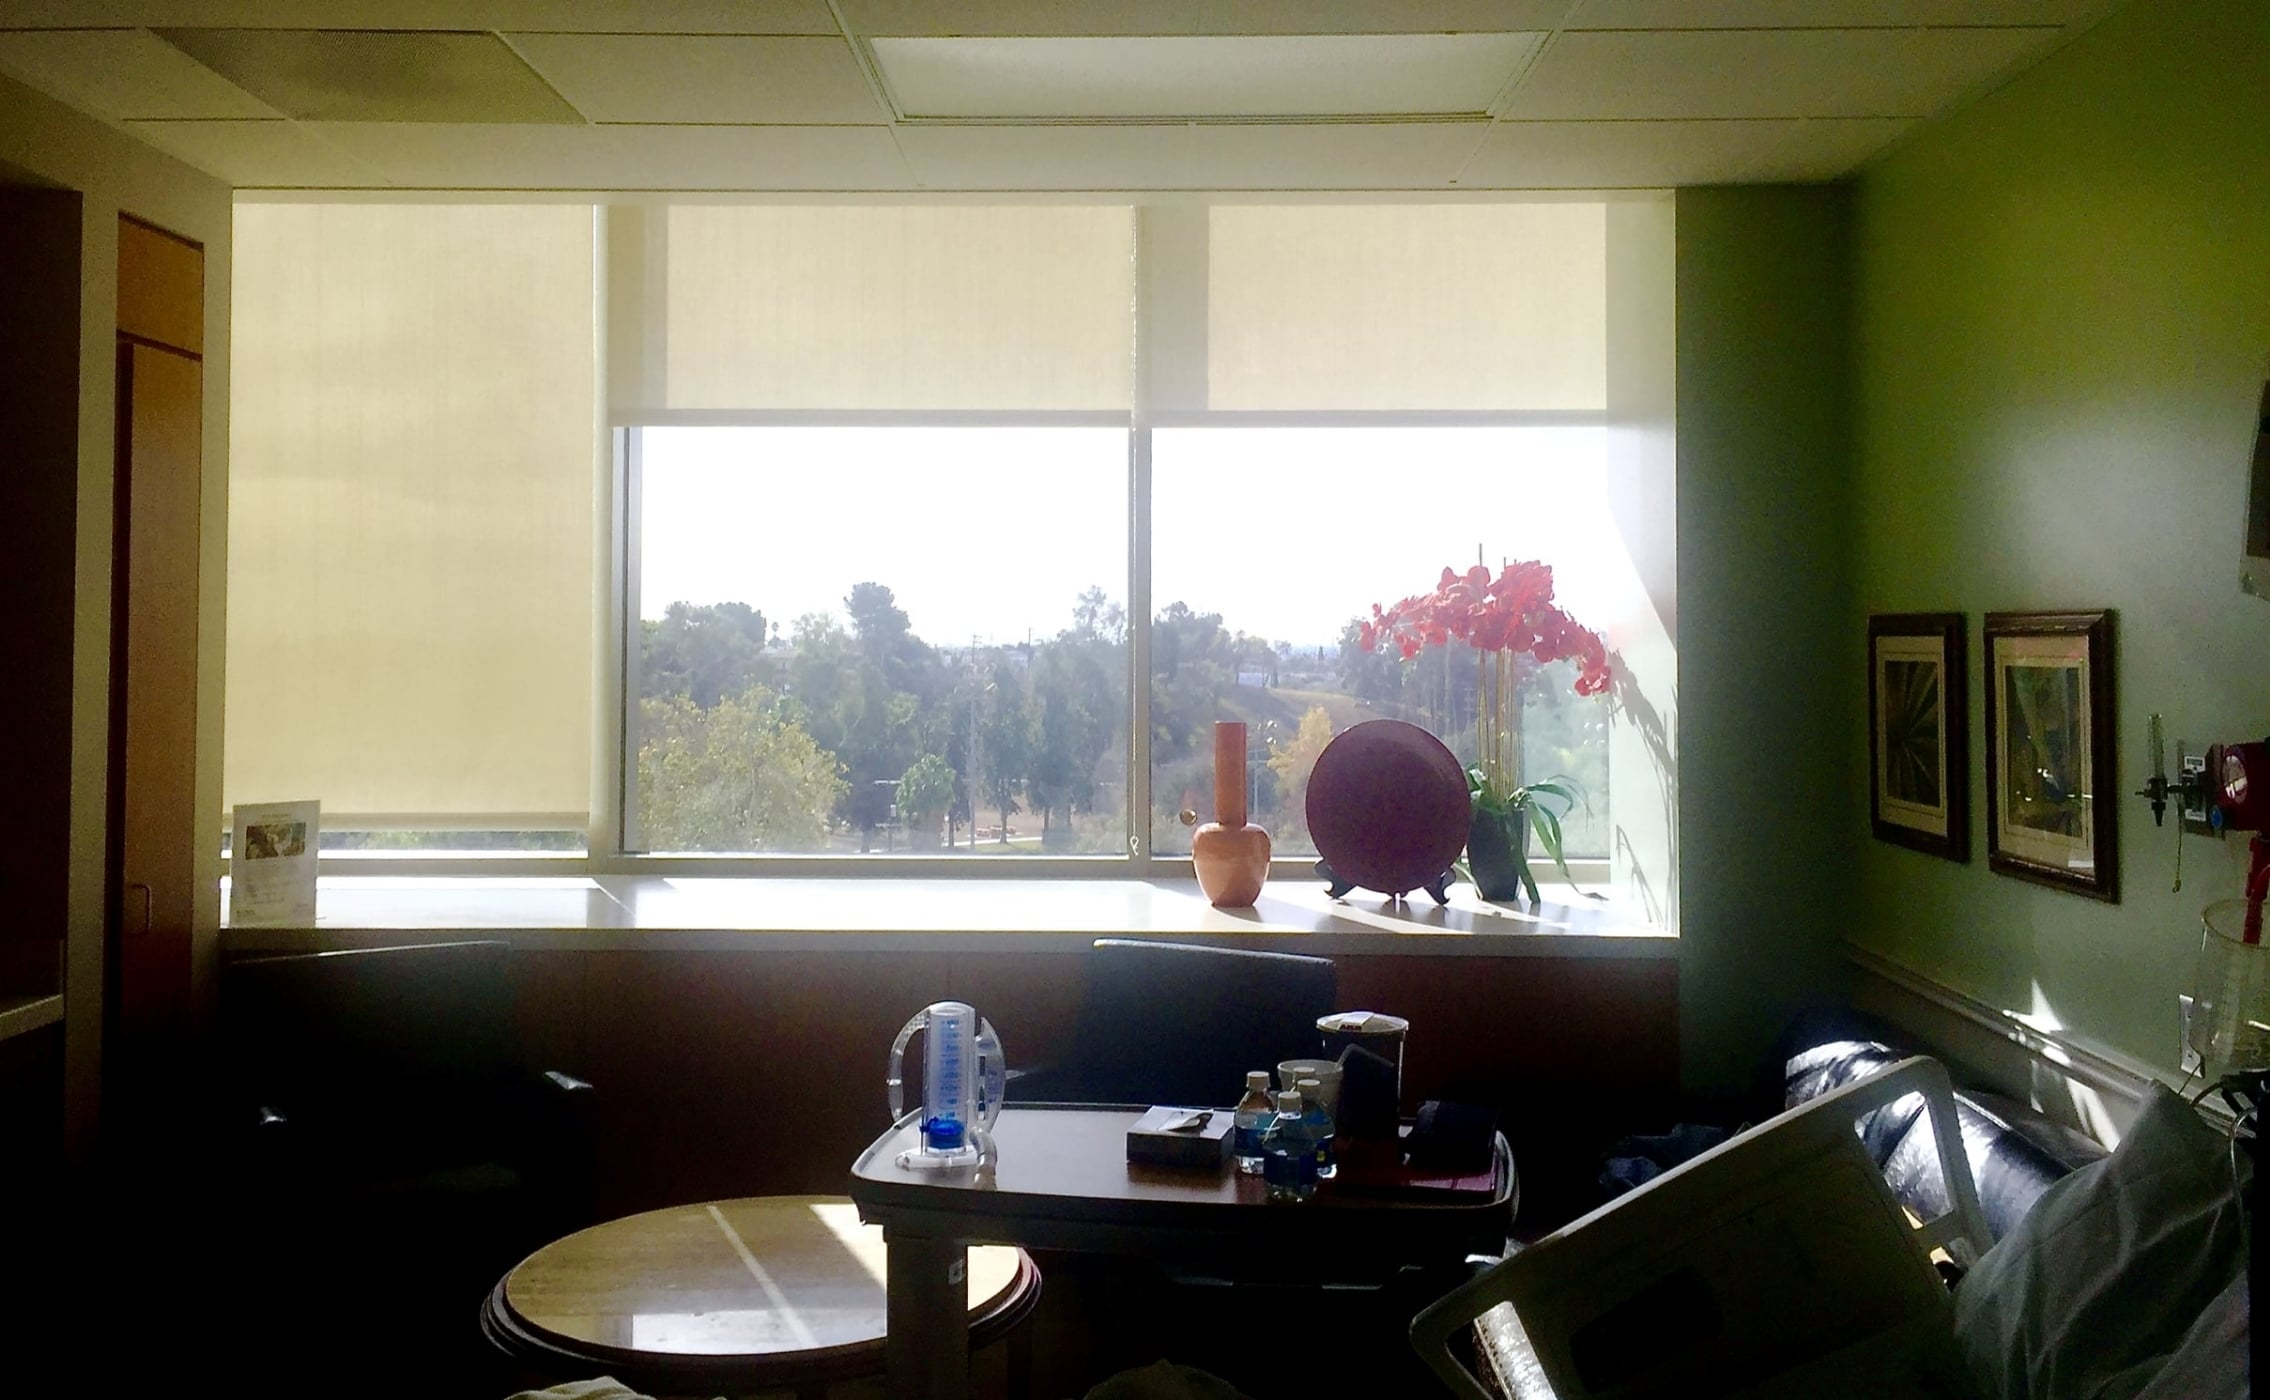 6th Floor, Keck Medical Center of USC, Los Angeles